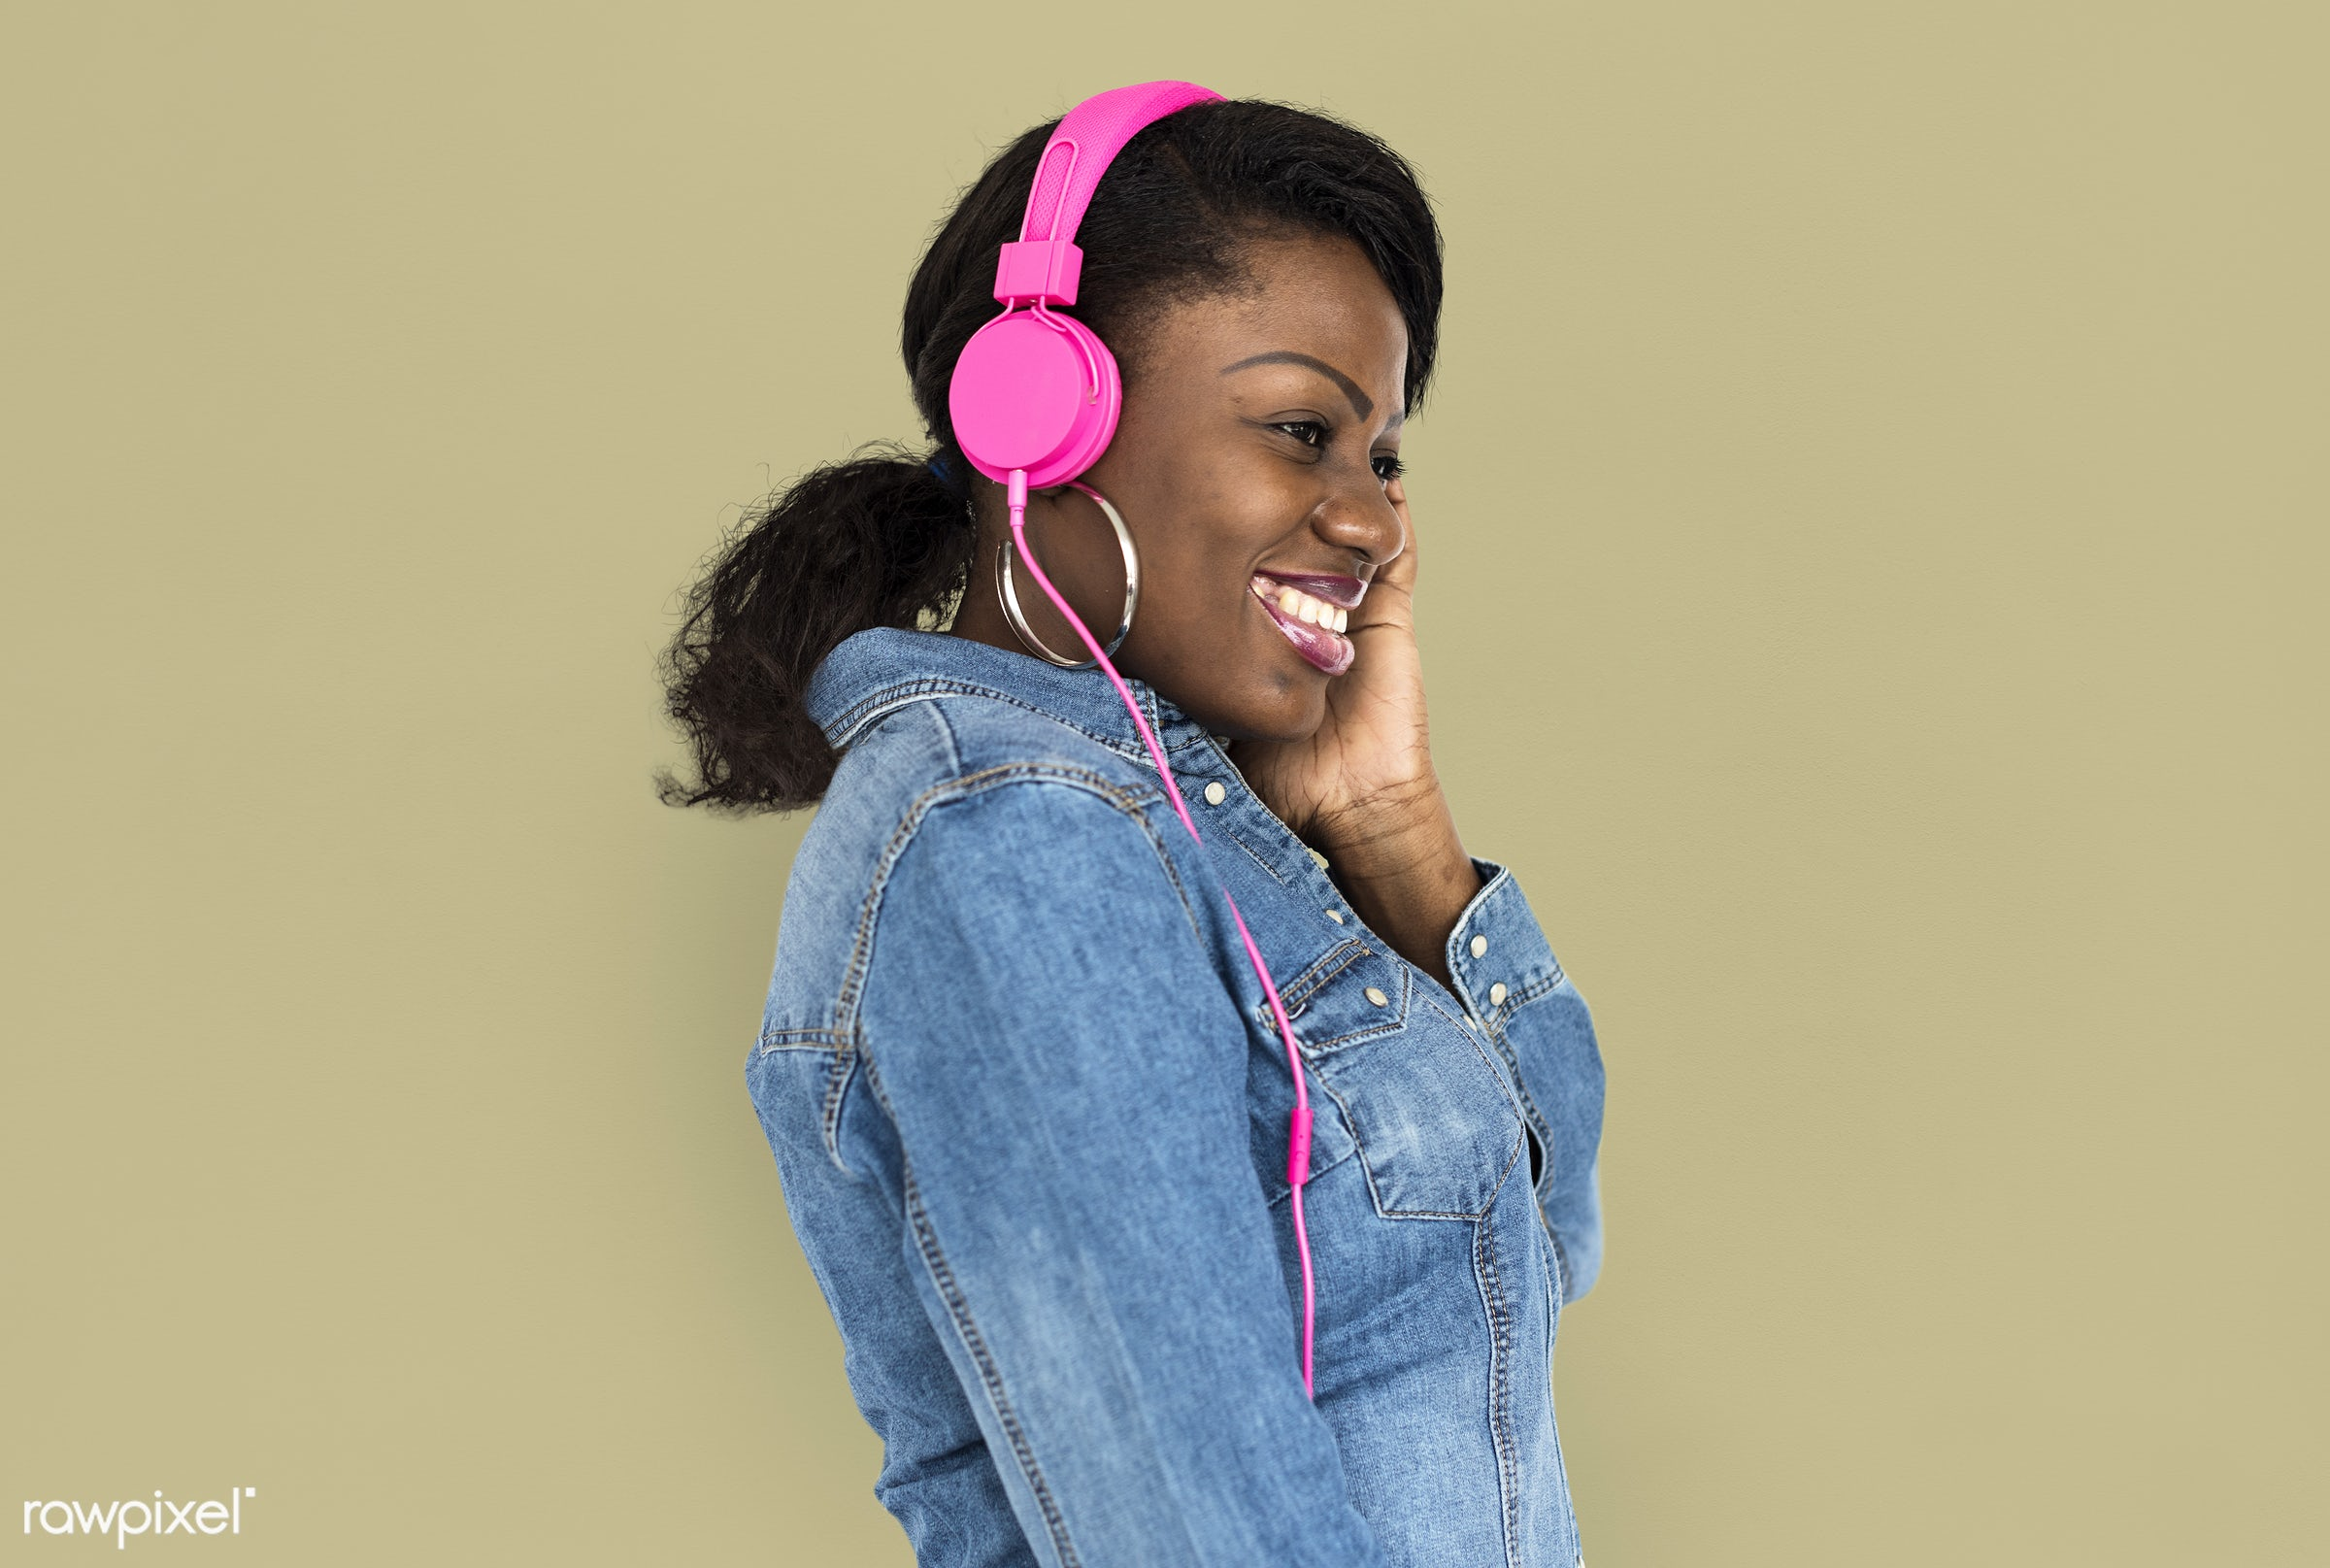 african descent, background, candid, casual, cheerful, earrings, emotion, enjoyment, entertainment, expression, female, girl...